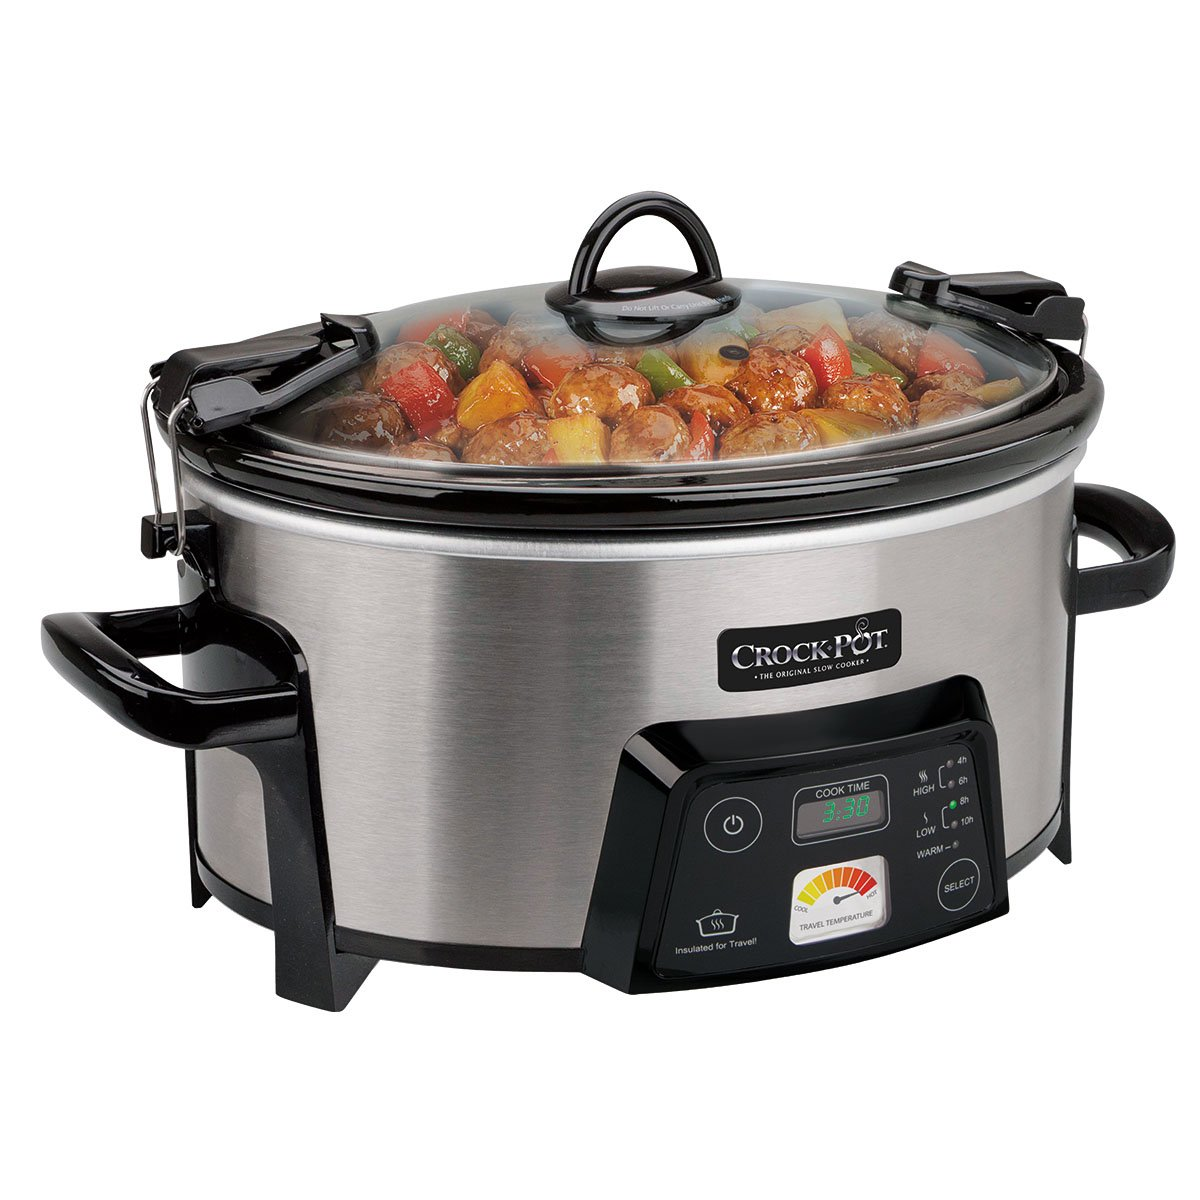 Crock-Pot 6-Quart Cook Carry Digital Slow Cooker with Heat-Saver Stoneware, Brushed Stainless Steel Certified Refurbished